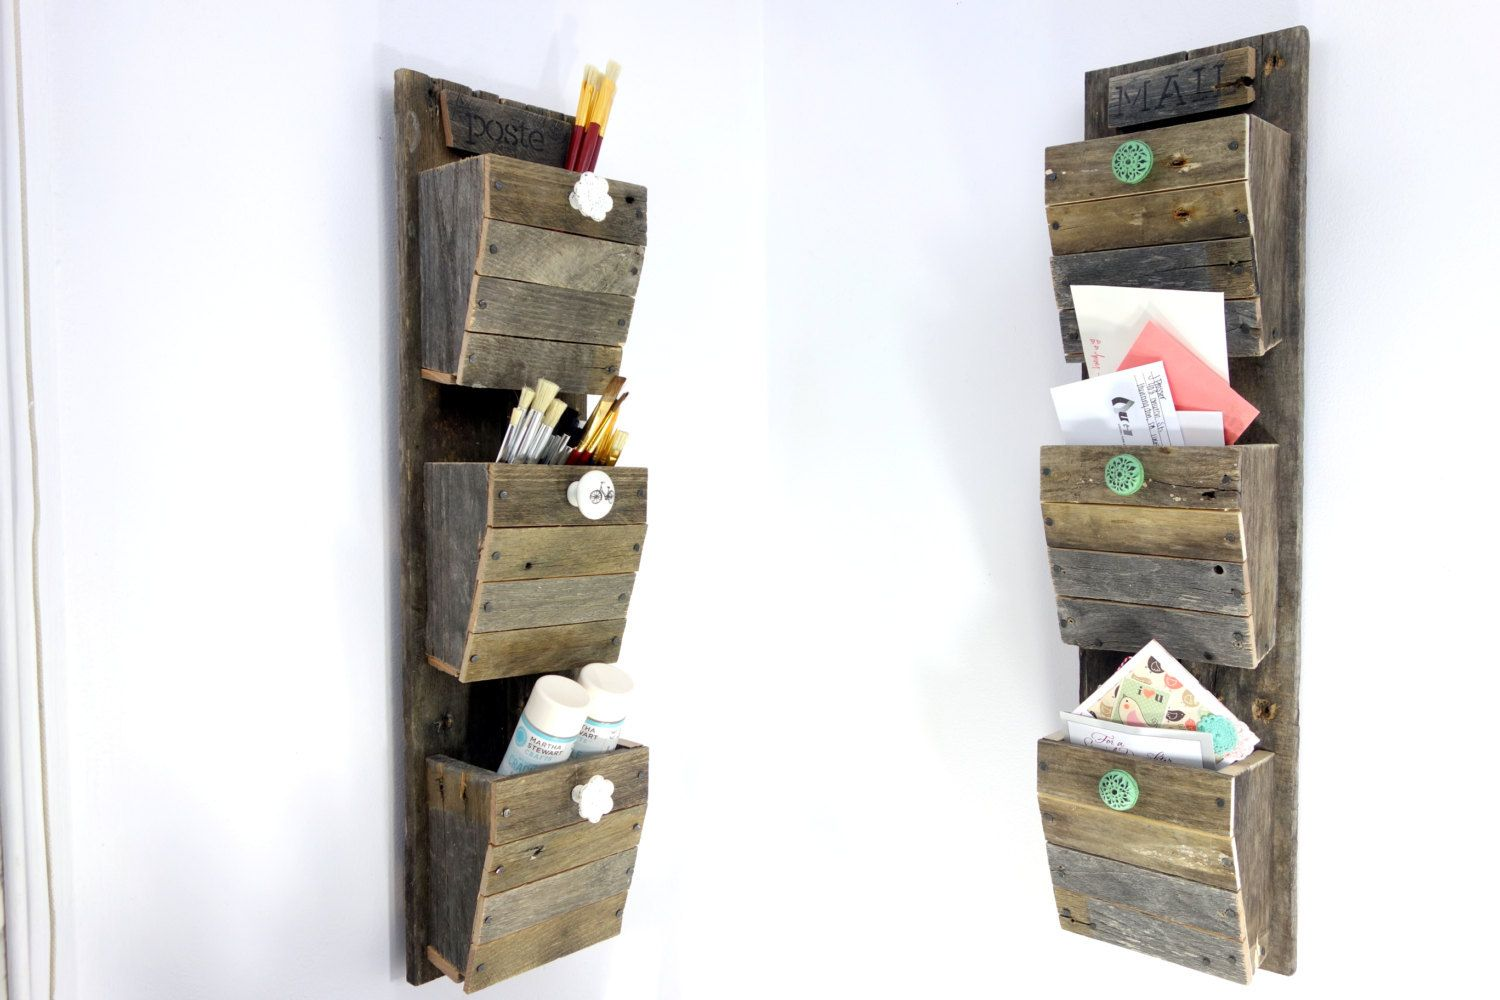 b0f3d6353354 Personalized Mail Organizer - Reclaimed Wood Wall Hanging Entry ...